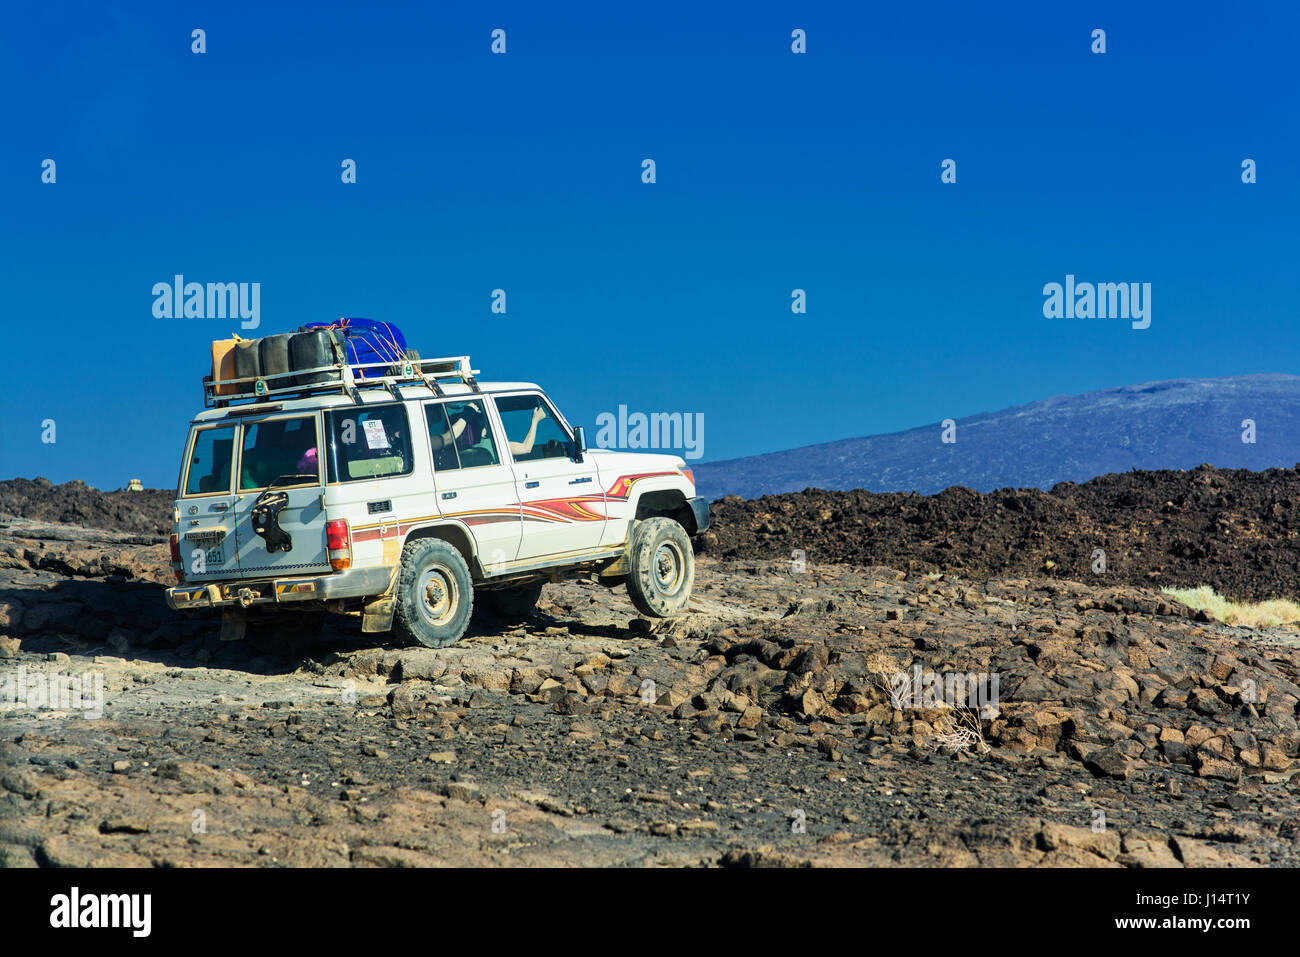 AFAR REGION, ETHIOPIA: Journey to the crater by jeep. HAVE YOU ever wondered what it must look like to stare into - Stock Image